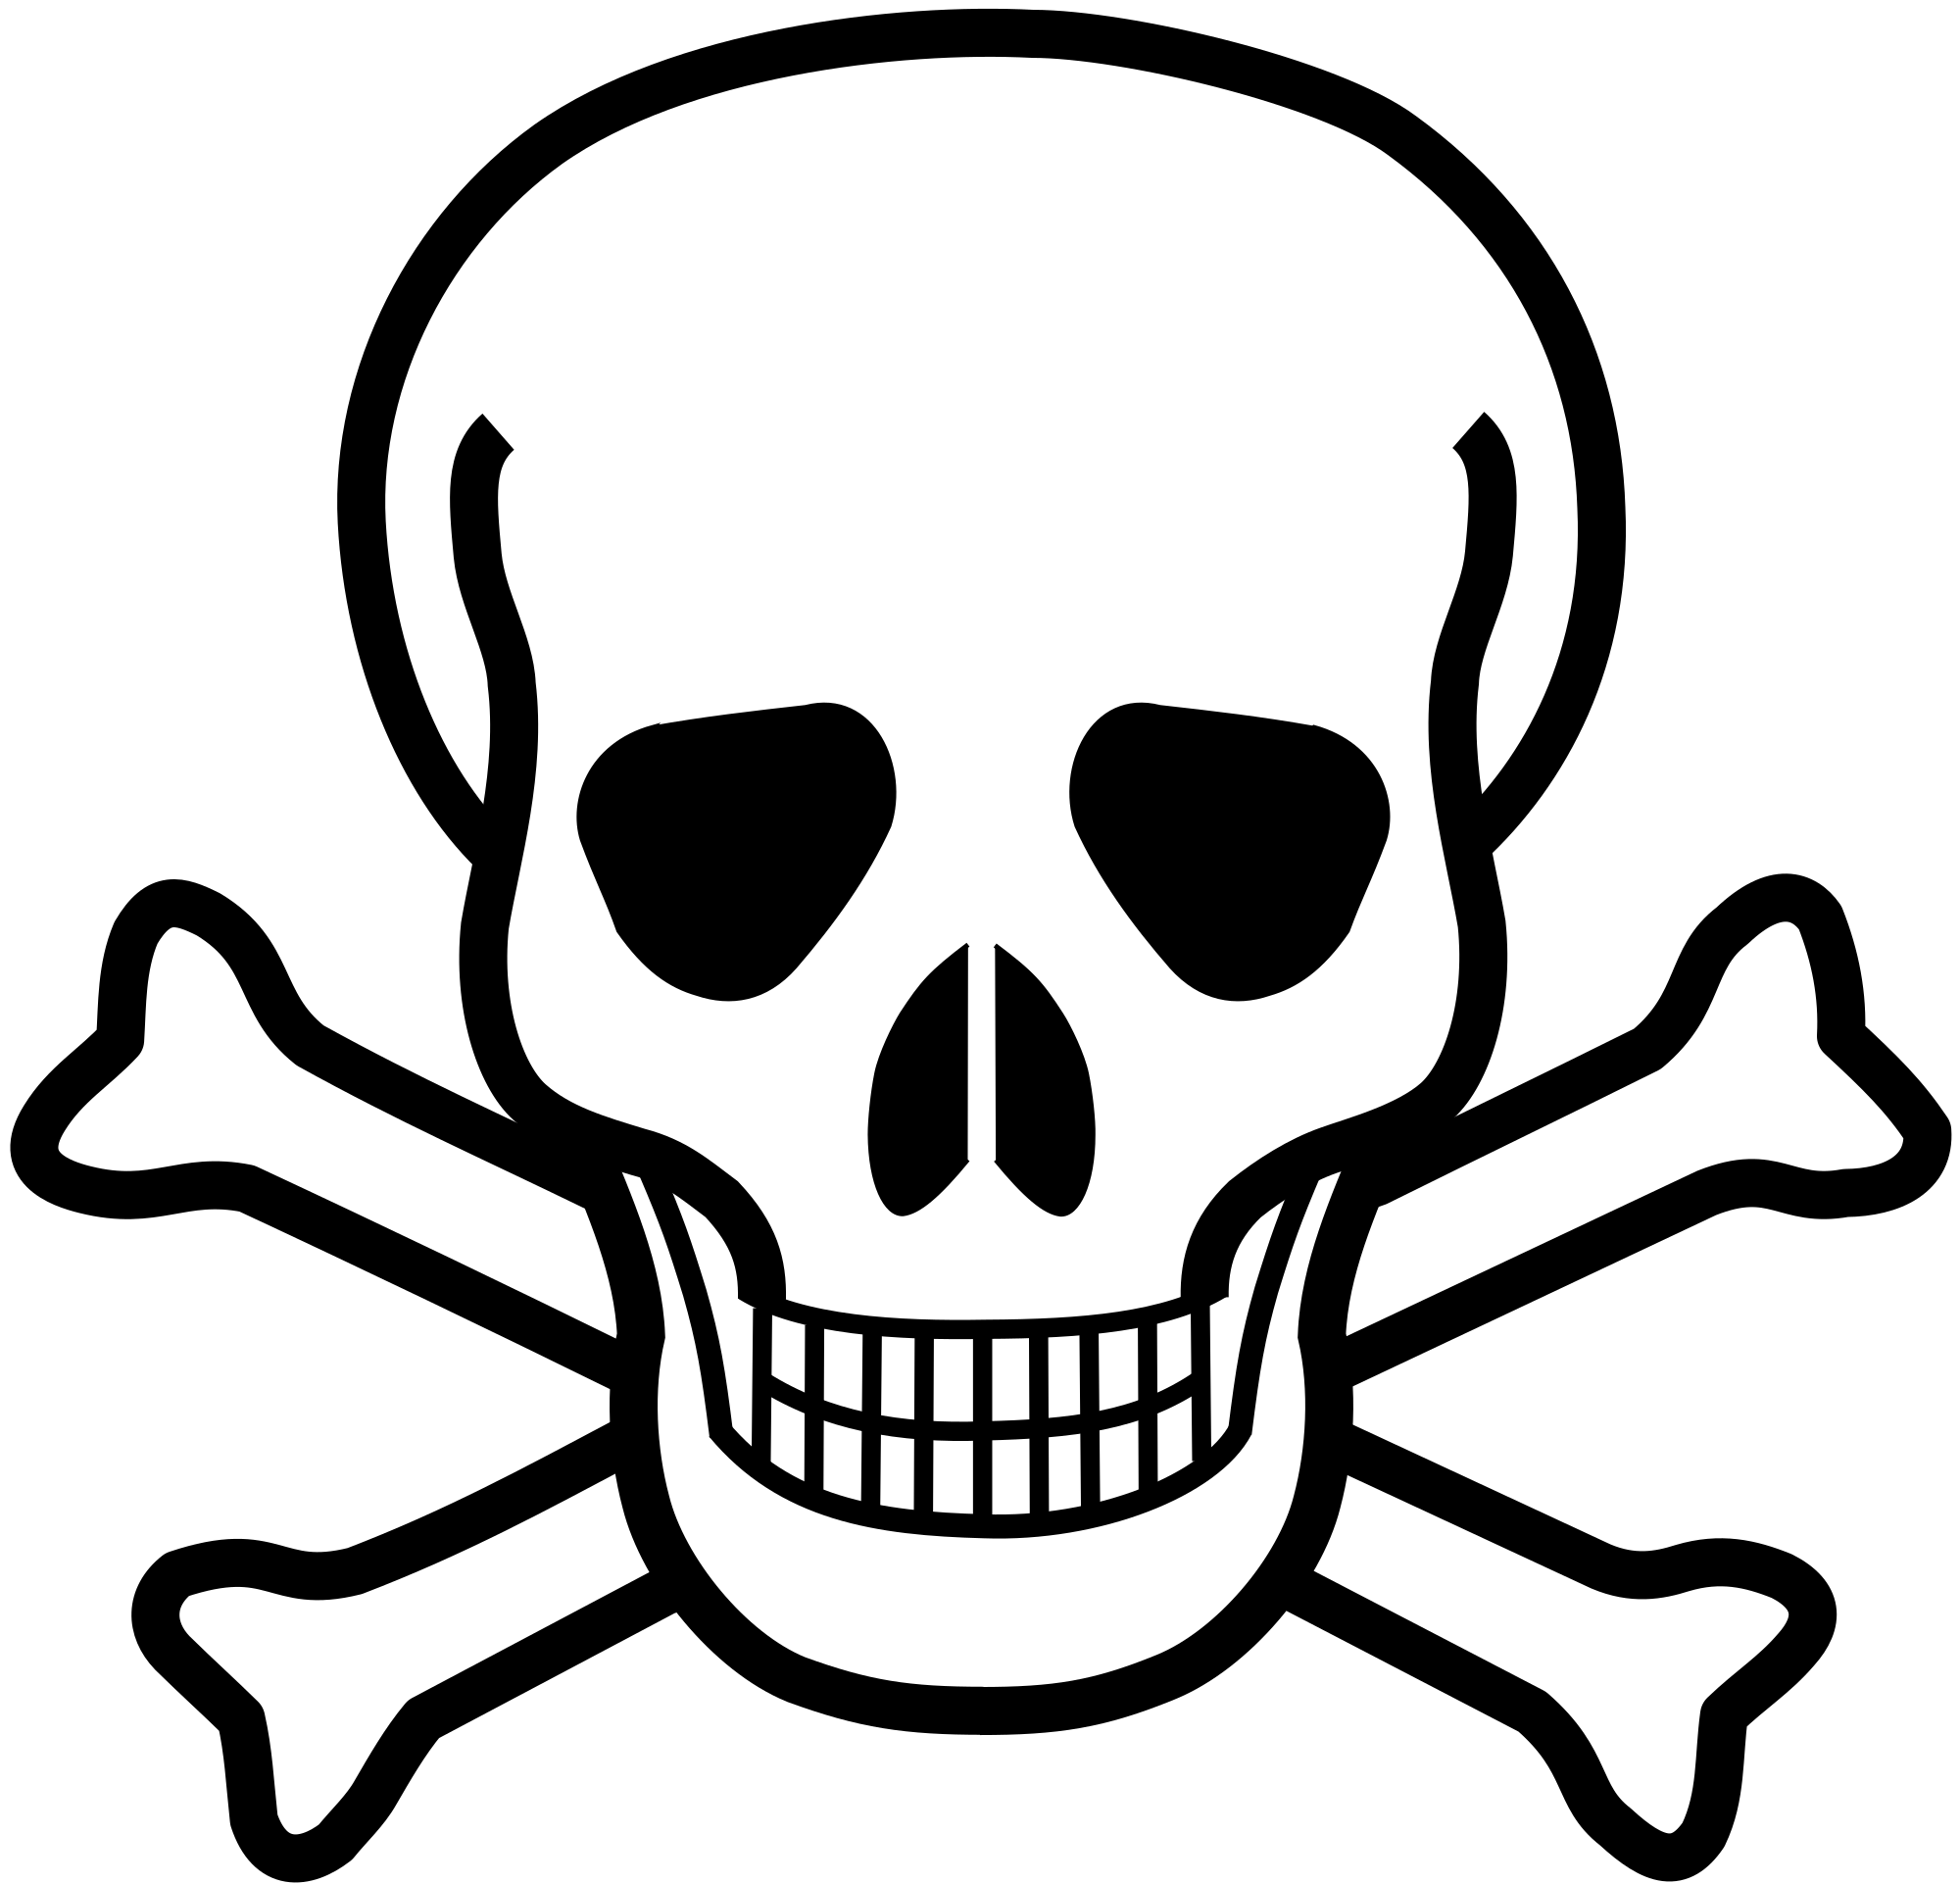 2000x1922 Fileskull And Crossbones.svg